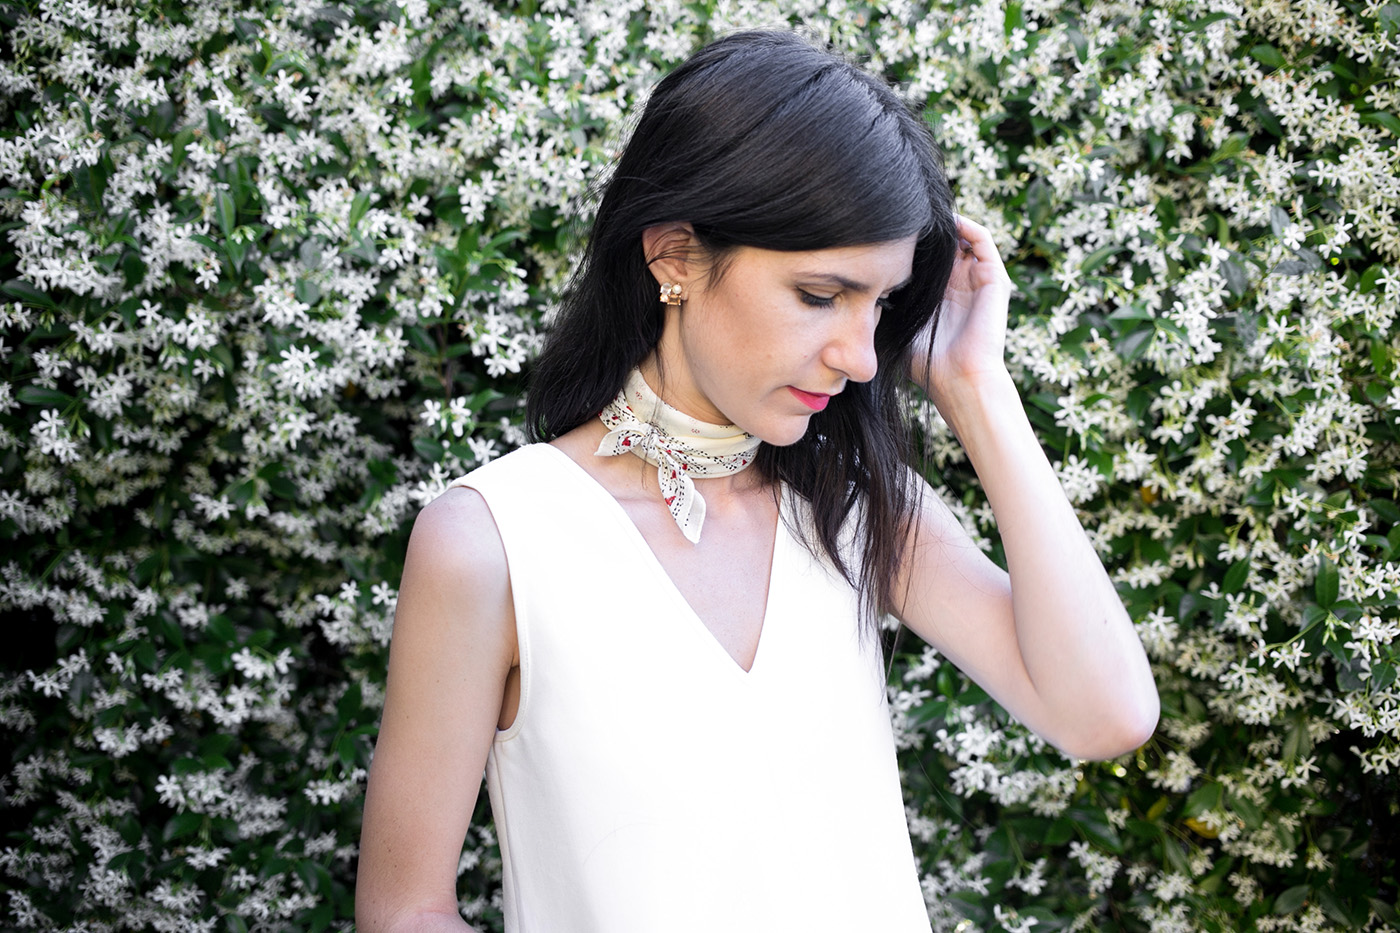 madewell bandana neck tie outfit